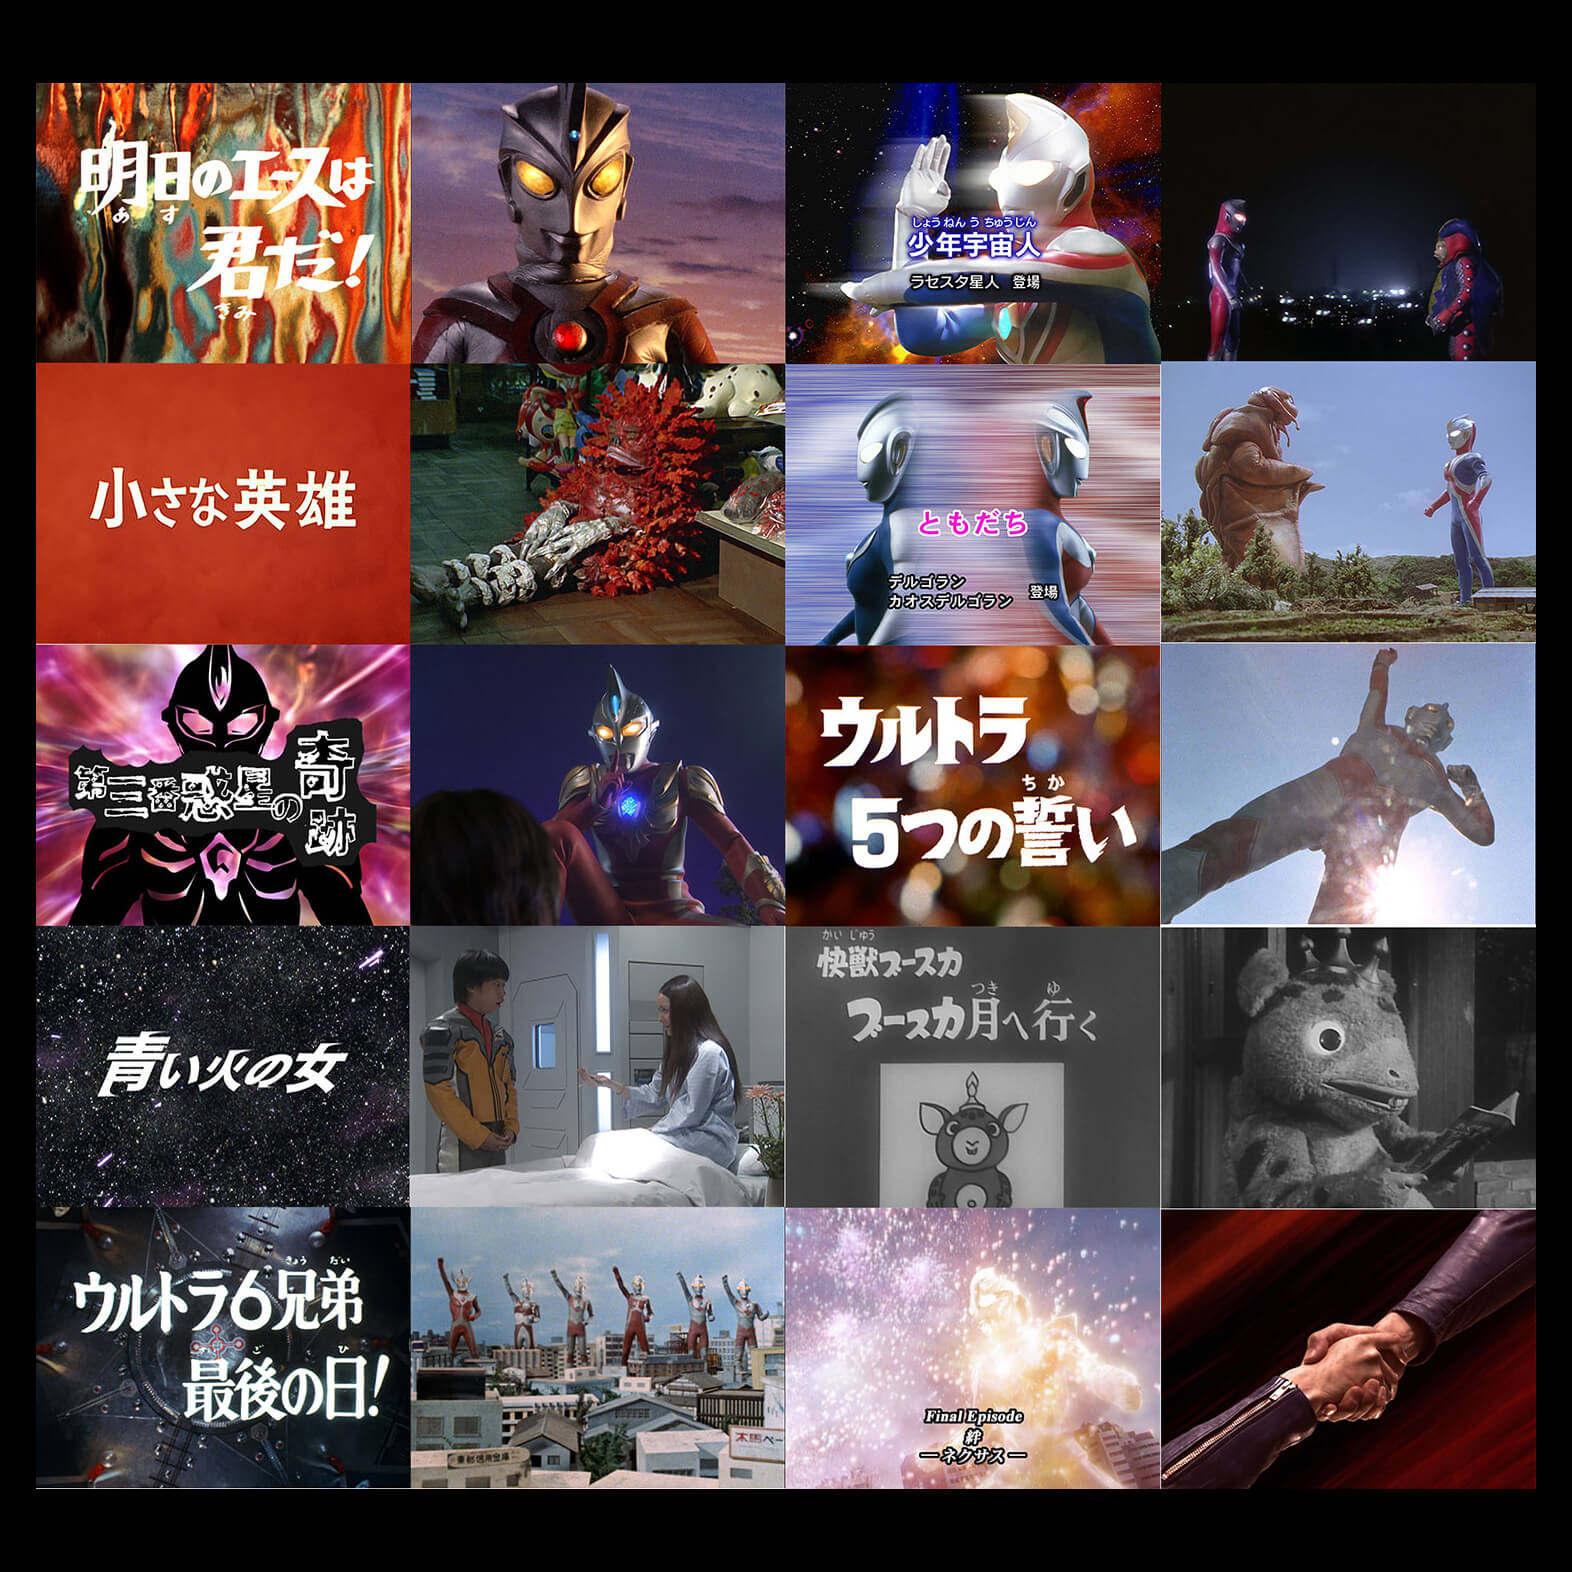 ULTRAMAN OFFICIAL YOUTUBE CHANNEL  BREAKS 1,000,000 SUBSCRIBERS